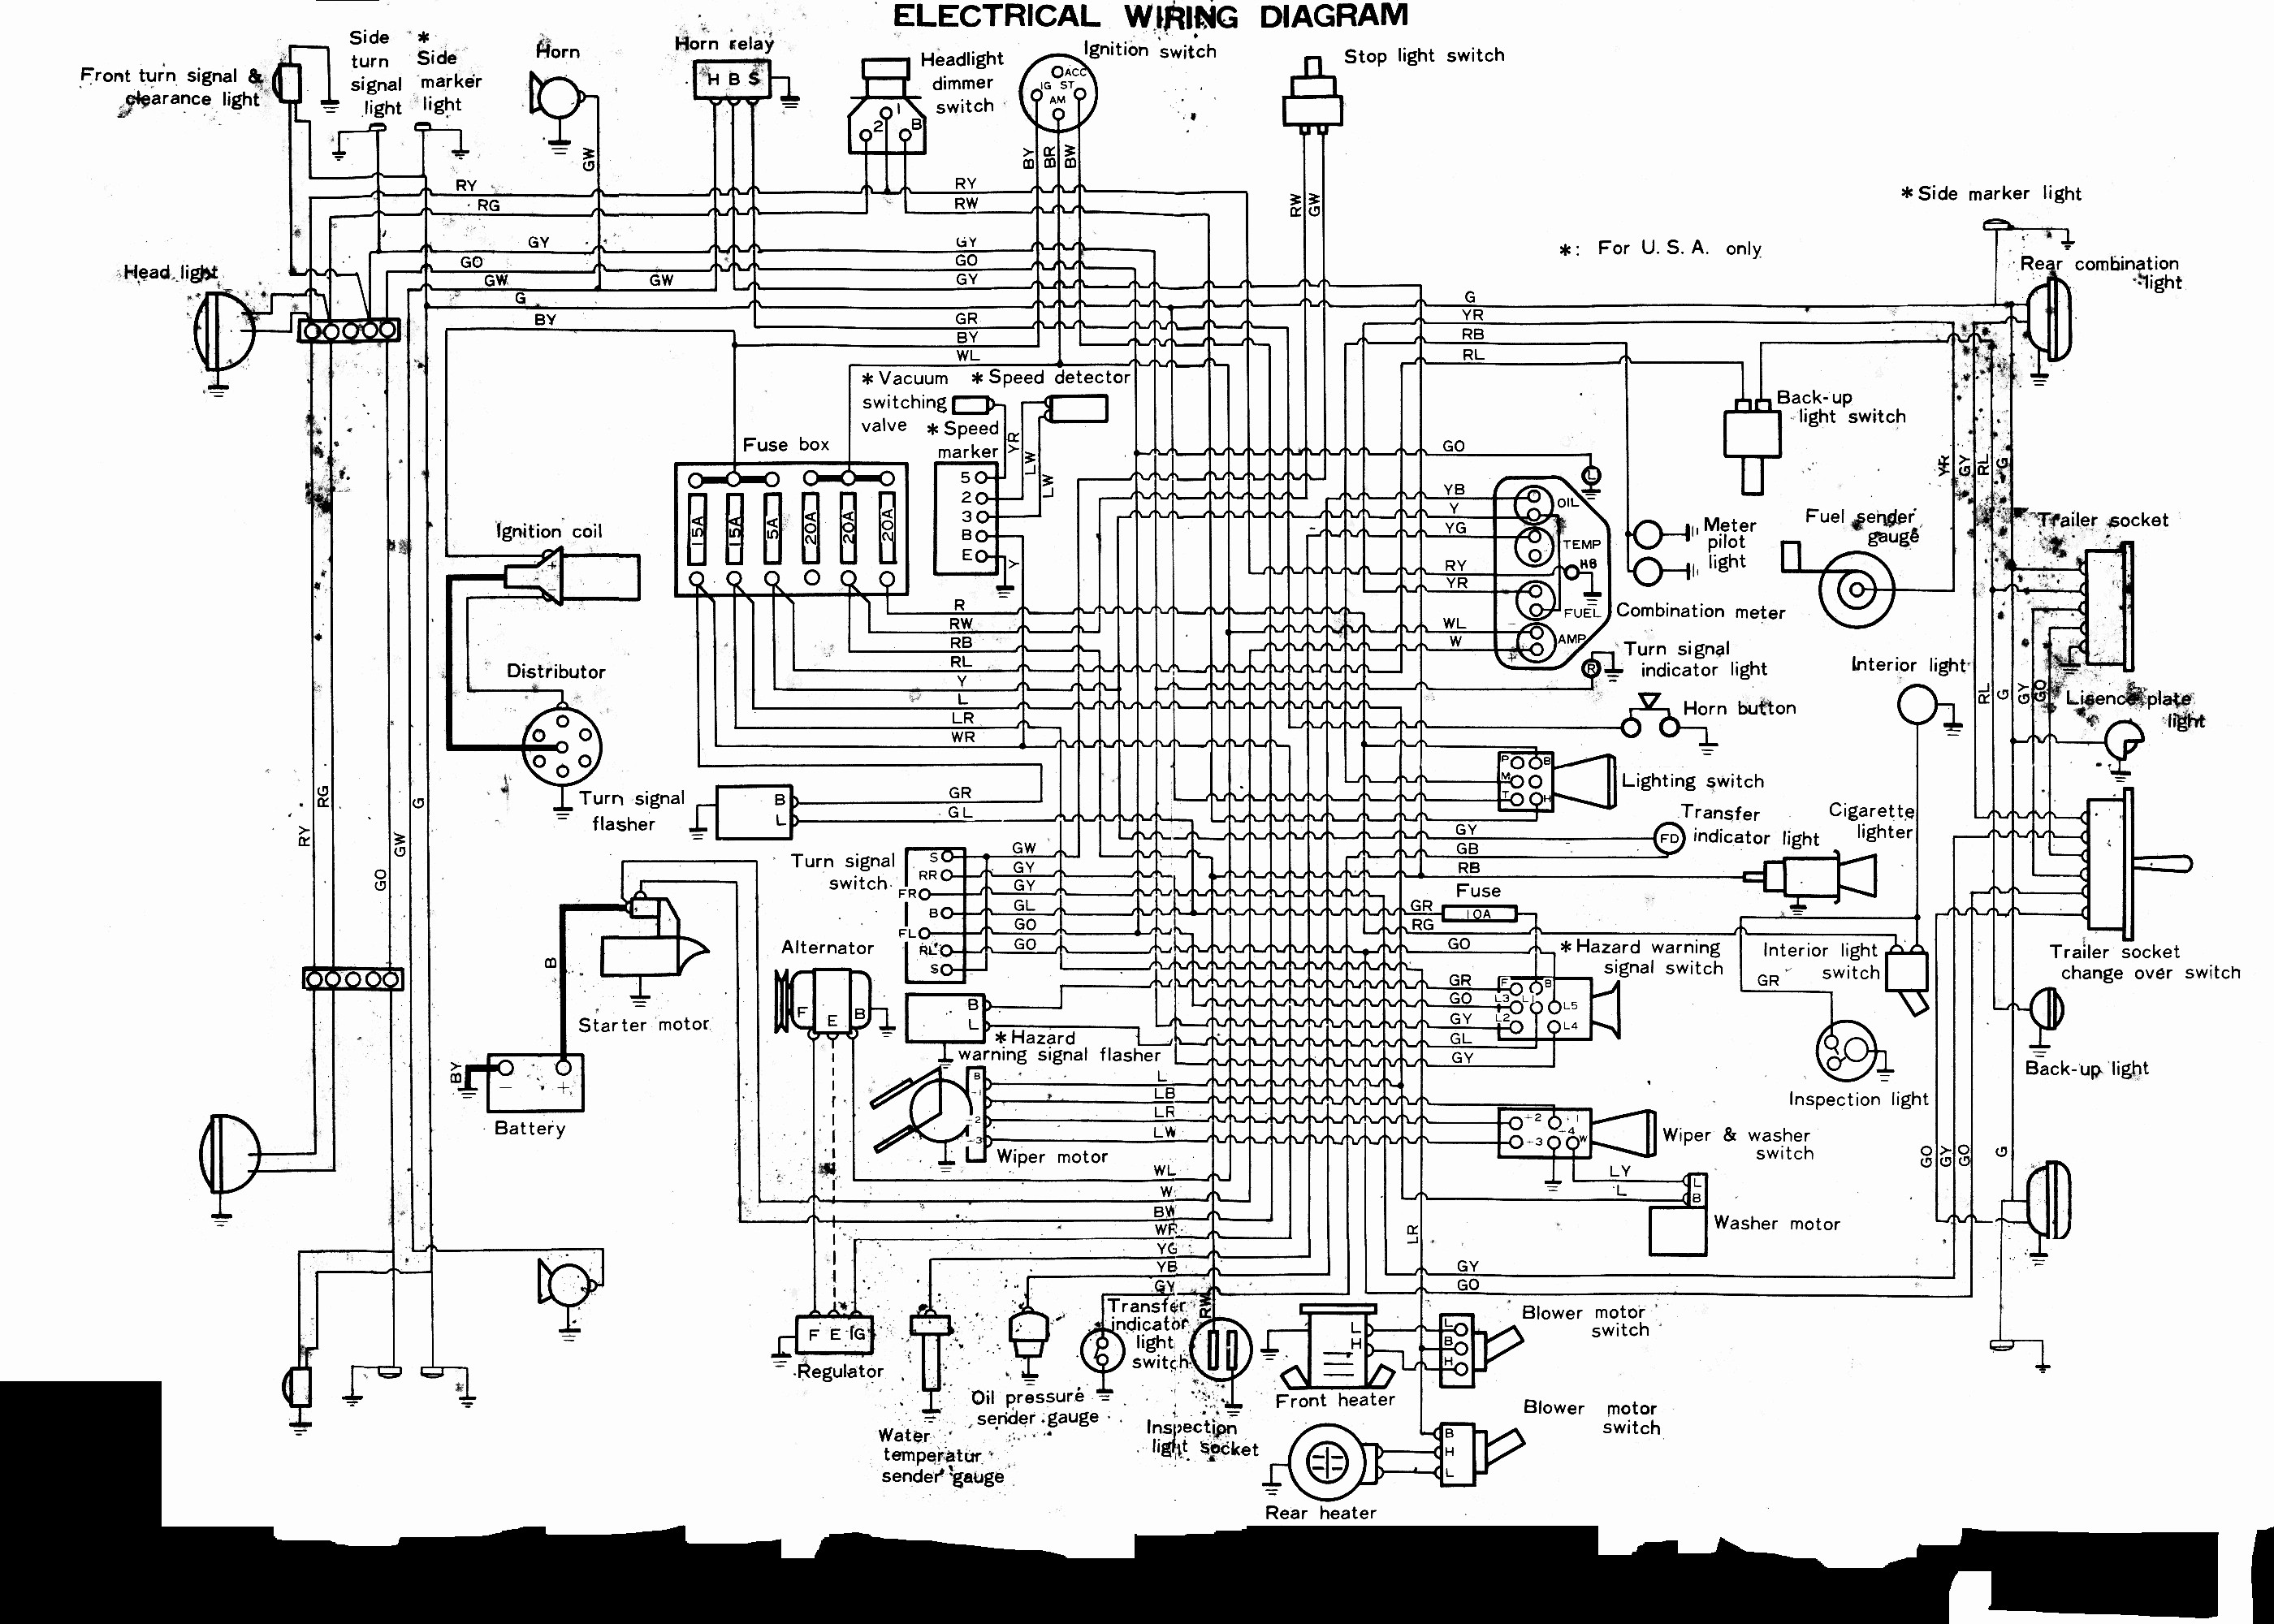 98 Mazda Protege Wiring Diagram Free Picture Schematics 2003 Chrysler Cirrus Rh Bravebros Co 2000 Rear Suspension Lx Intake Manifold